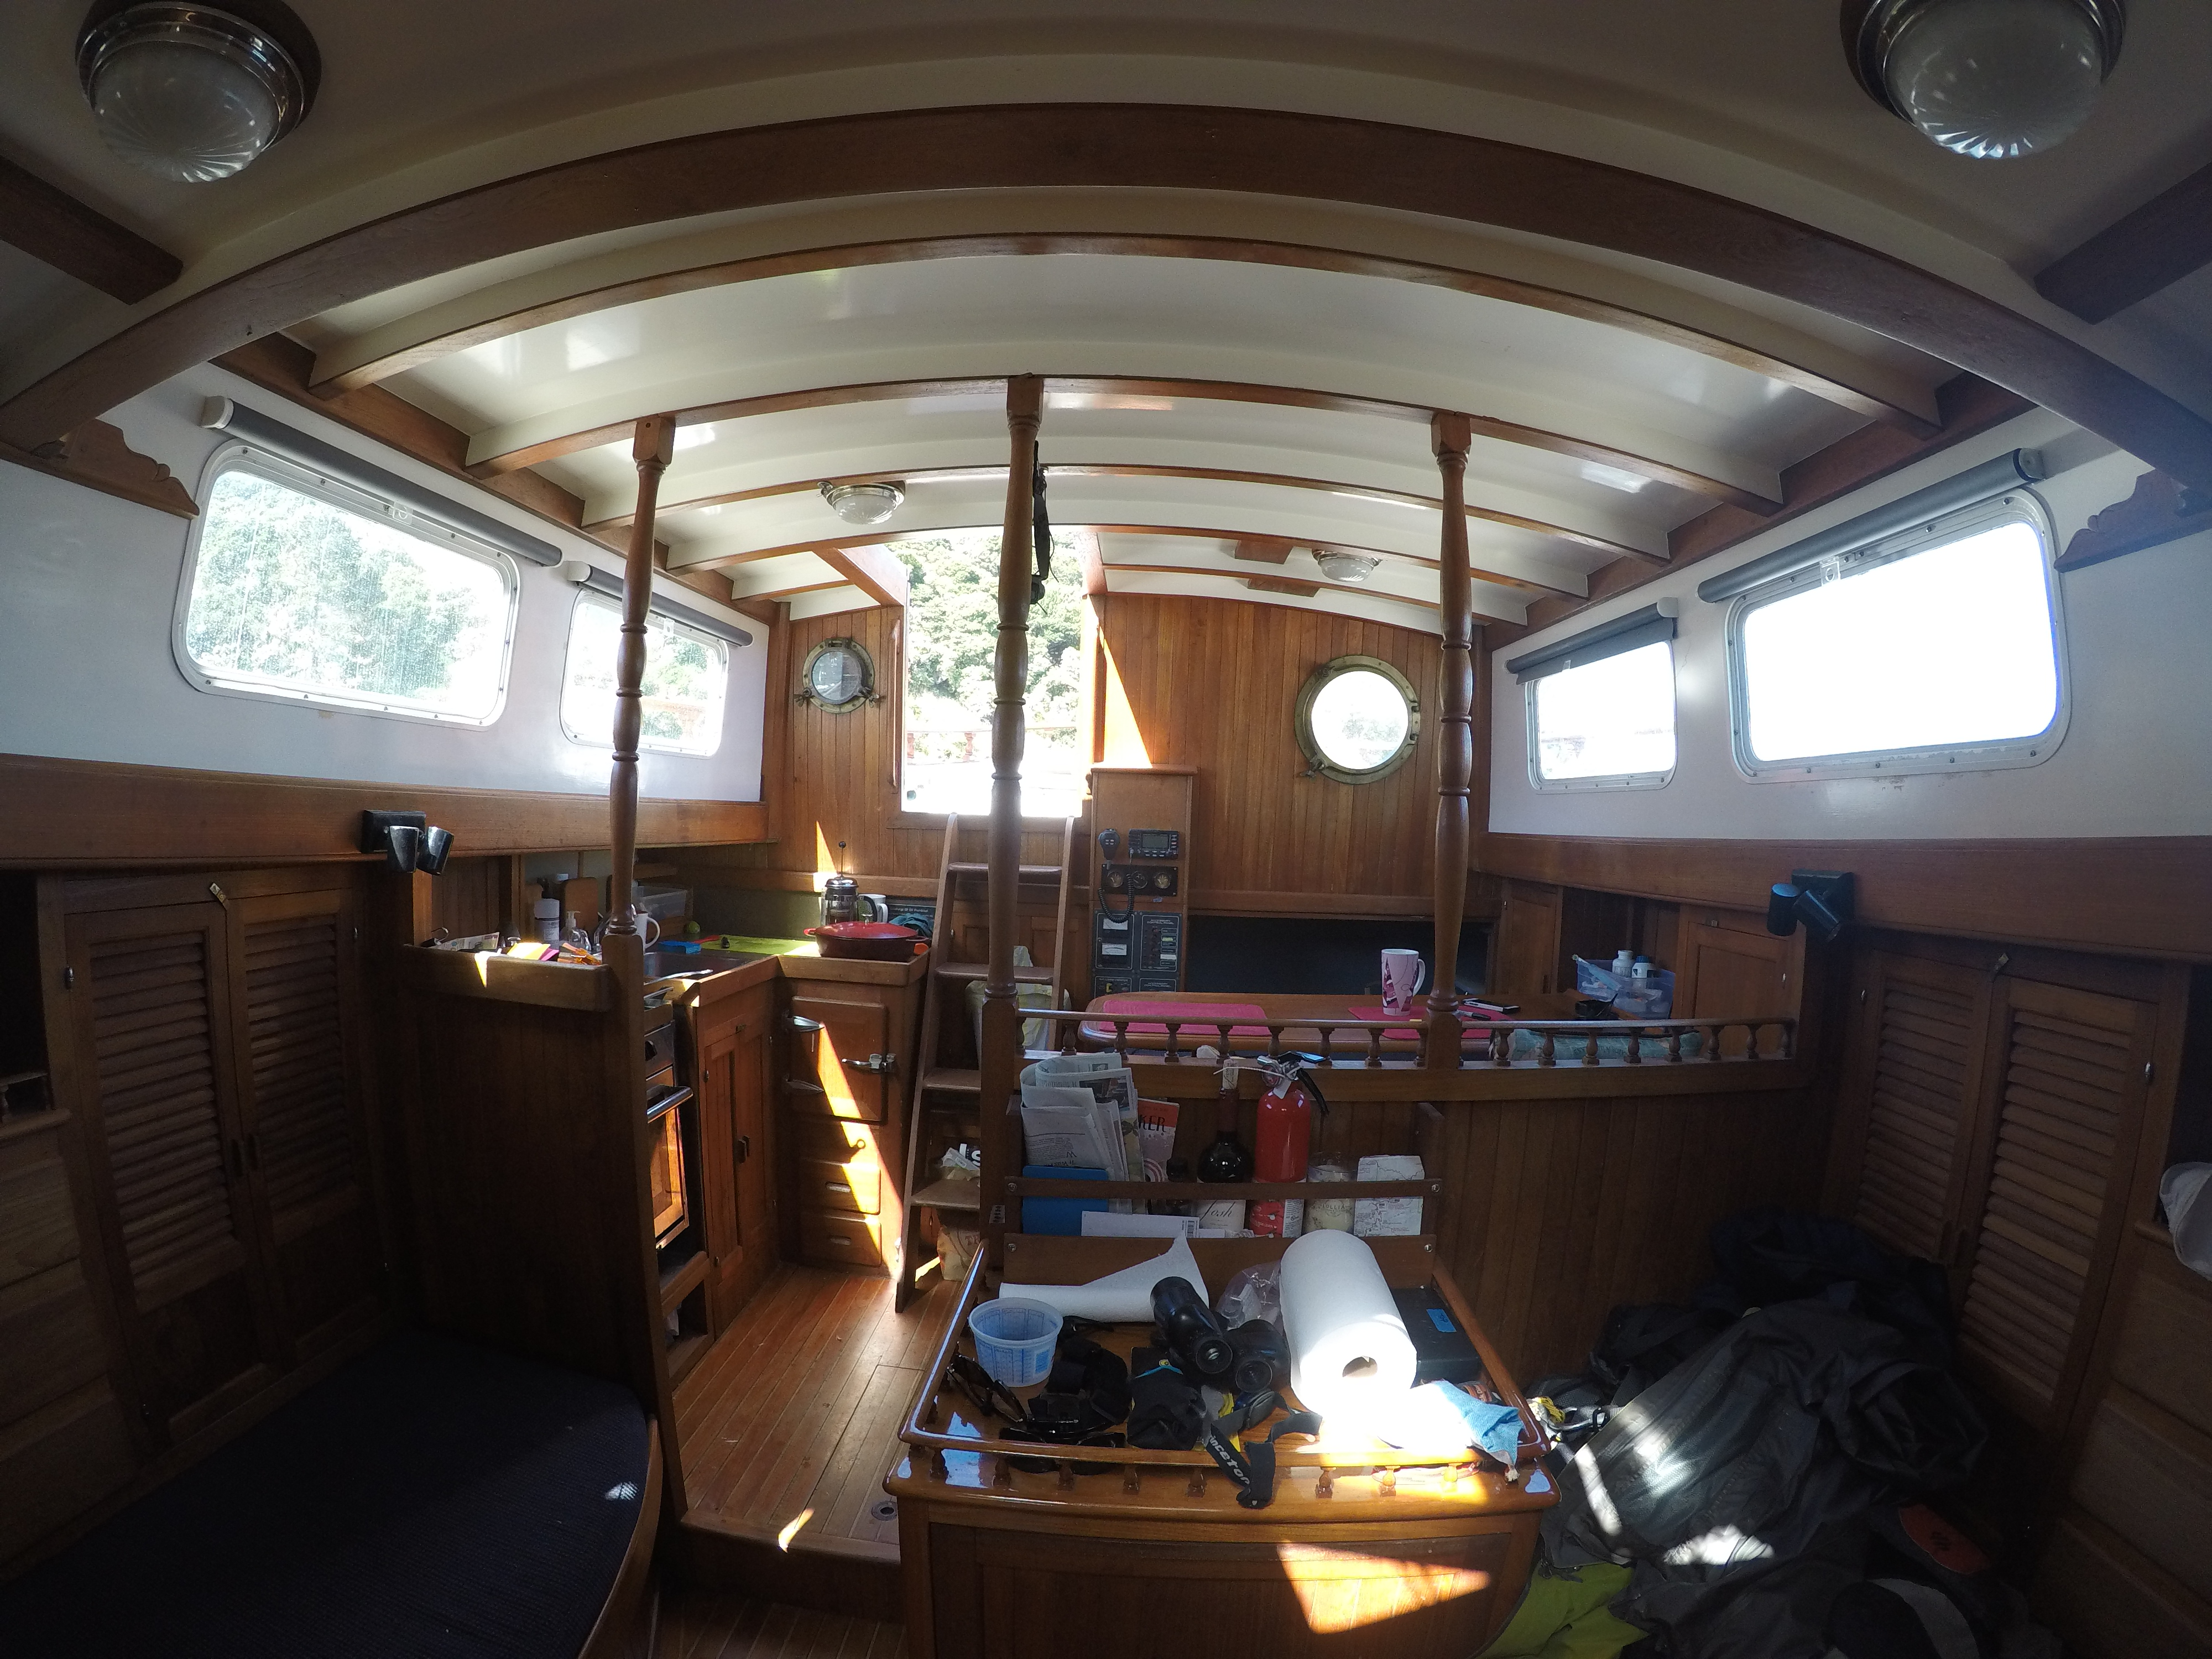 Inside of sailboat belonging to Kristin Hanes.